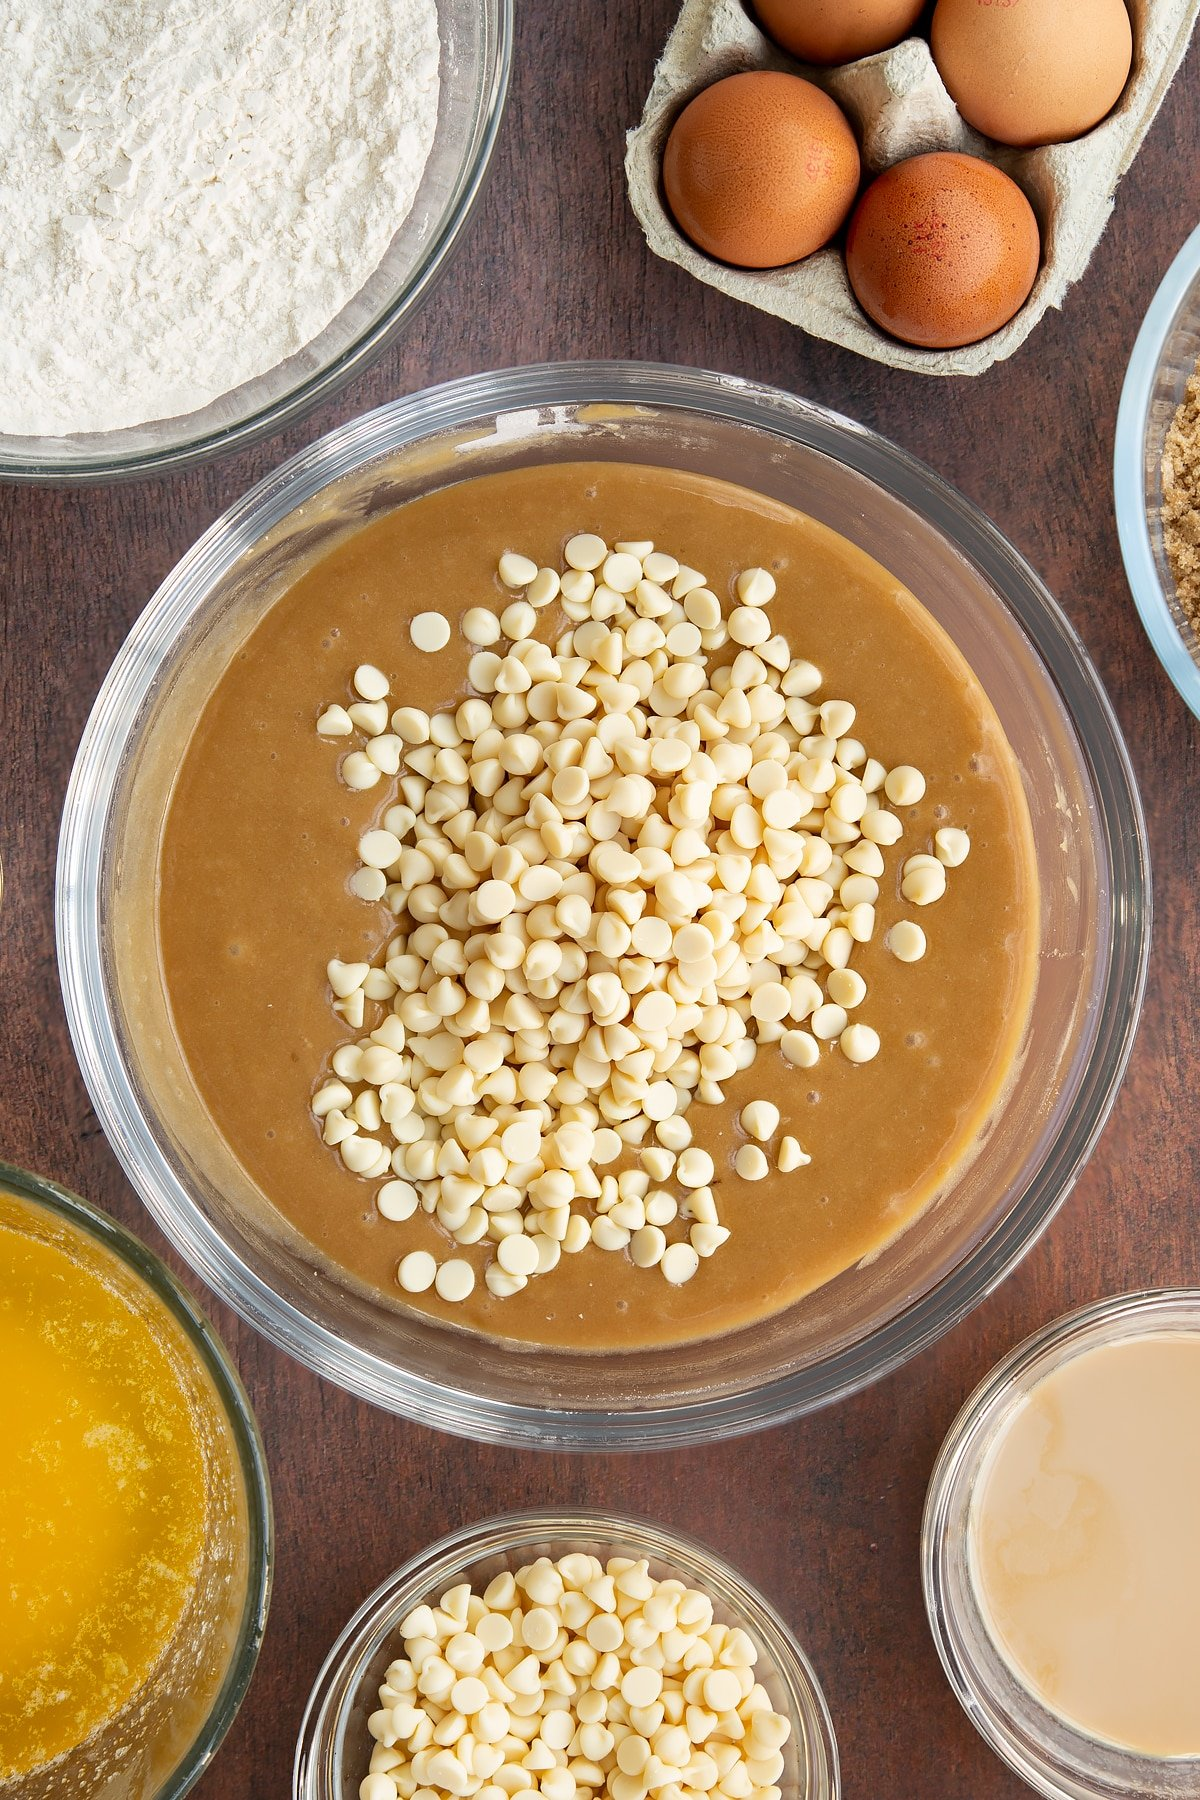 Baileys blondie batter in a glass mixing bowl with white chocolate chips on top. Ingredients to make Baileys blondies surround the bowl.